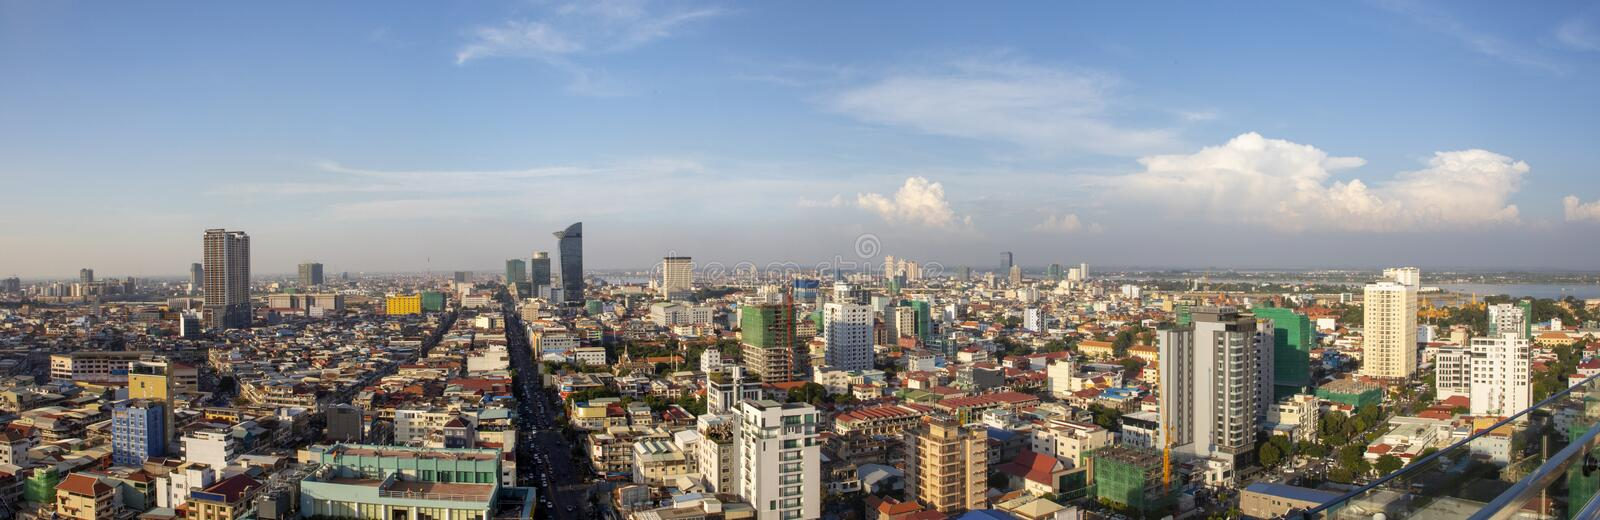 Phnom Penh Overview Daytime royalty free stock photos